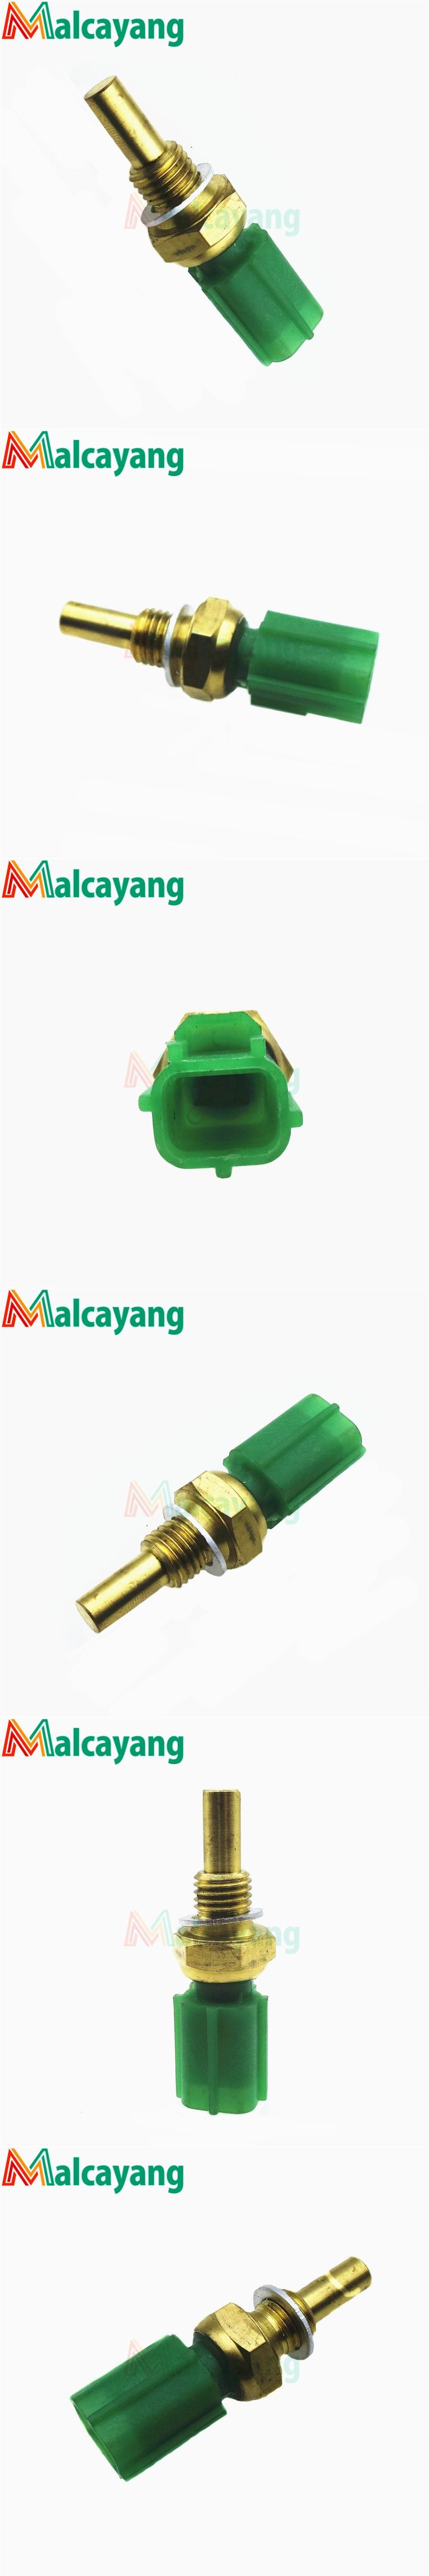 89422-20010 Water Temperature Sensor for Lexus ES/GX300 LS400 LX470 SC300 SC400 for Toyota Camry Land Cruiser MR2 Paseo Previa